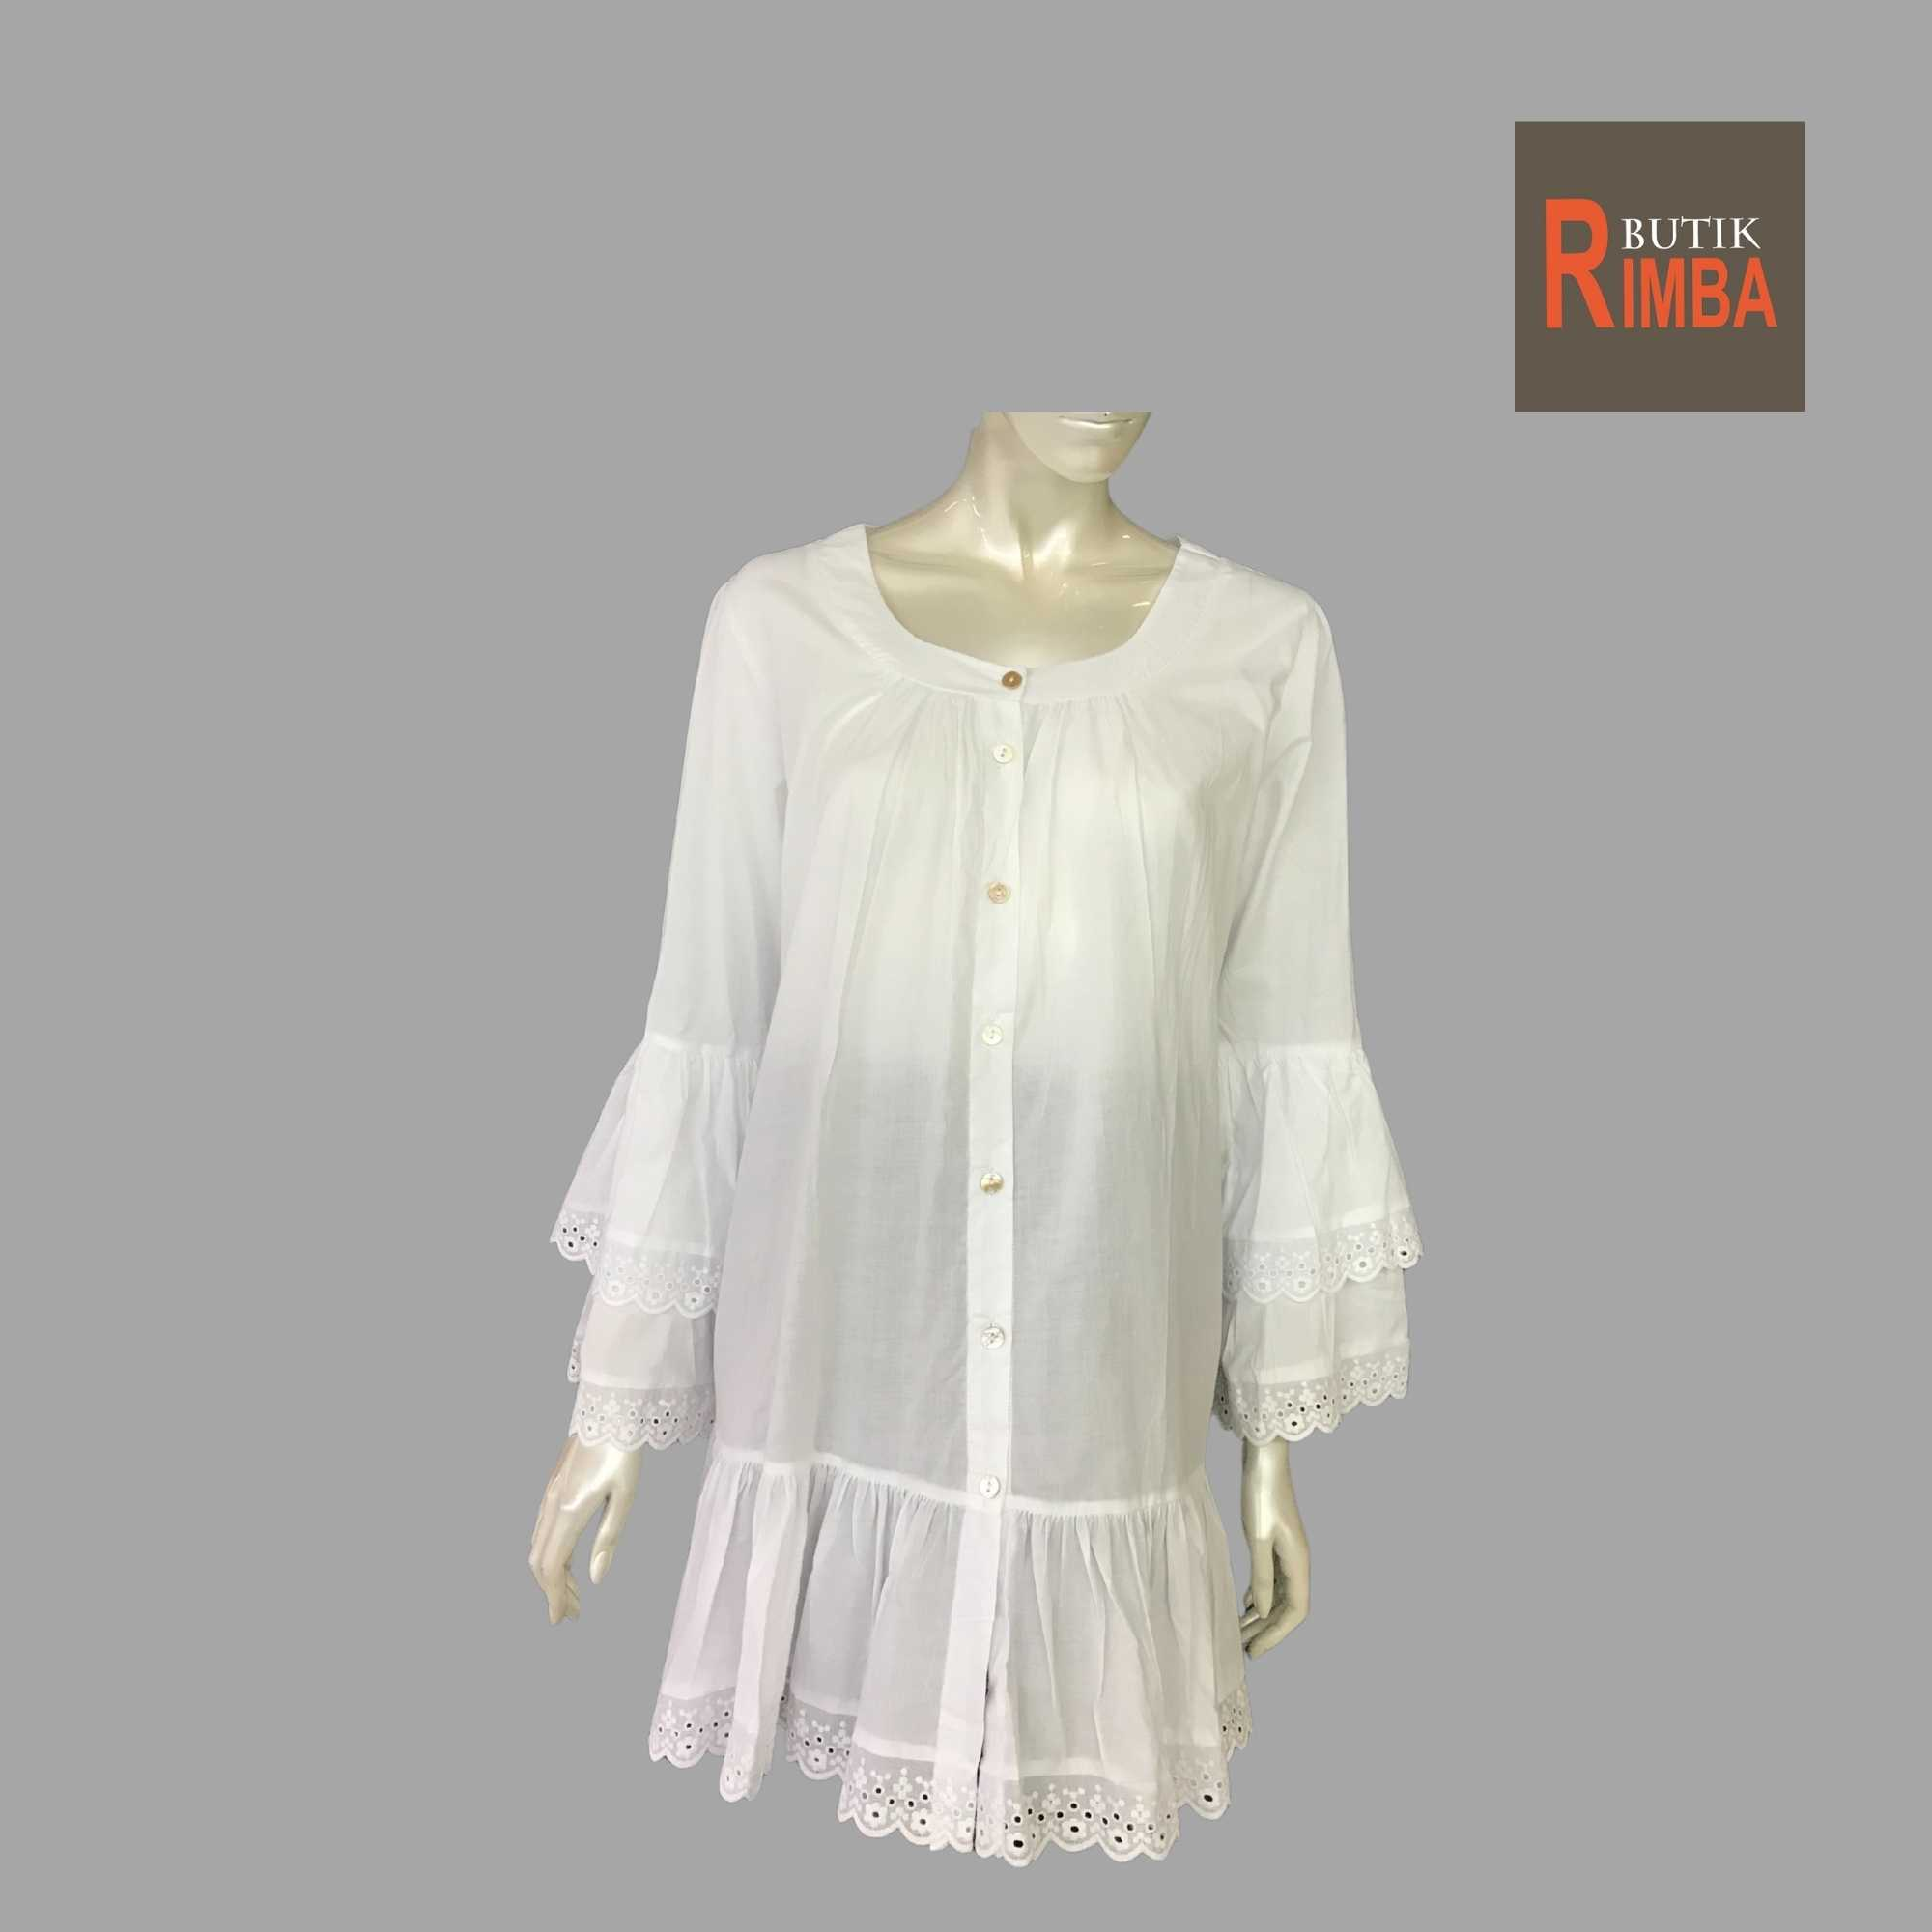 WOMEN CASUAL AND COMFORTABLE WHITE BLOUSE COTTON FREE SIZE PATTERN 01